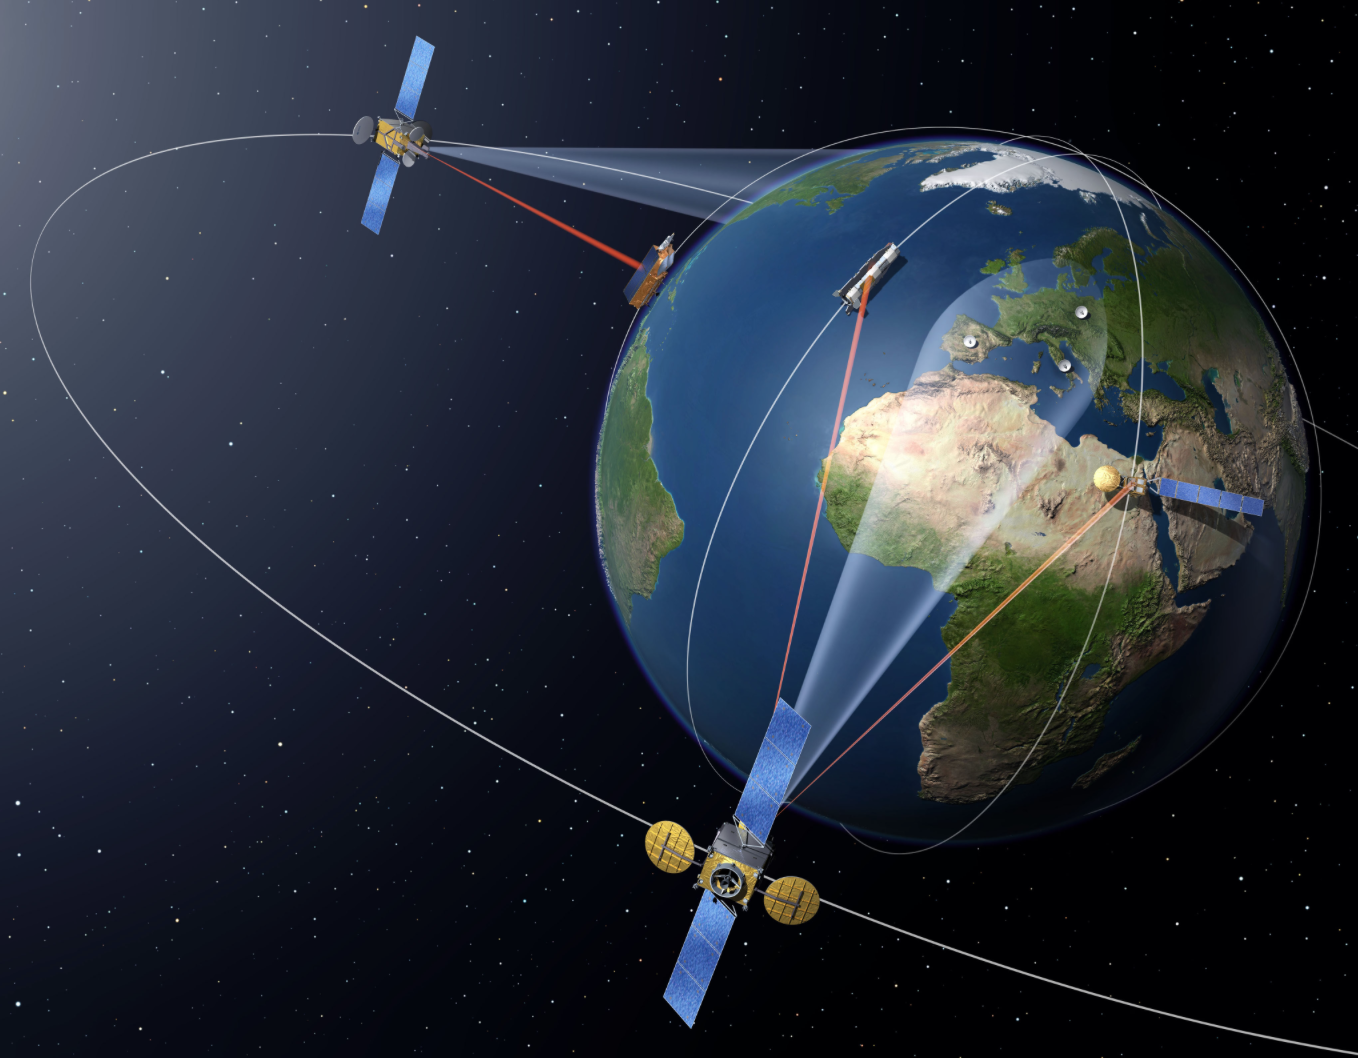 Laser technology developed by Tesat Spacecom, the SpaceDataHighway can transfer high-volume data from Earth observation satellites, airborne platforms, or even from the International Space Station.